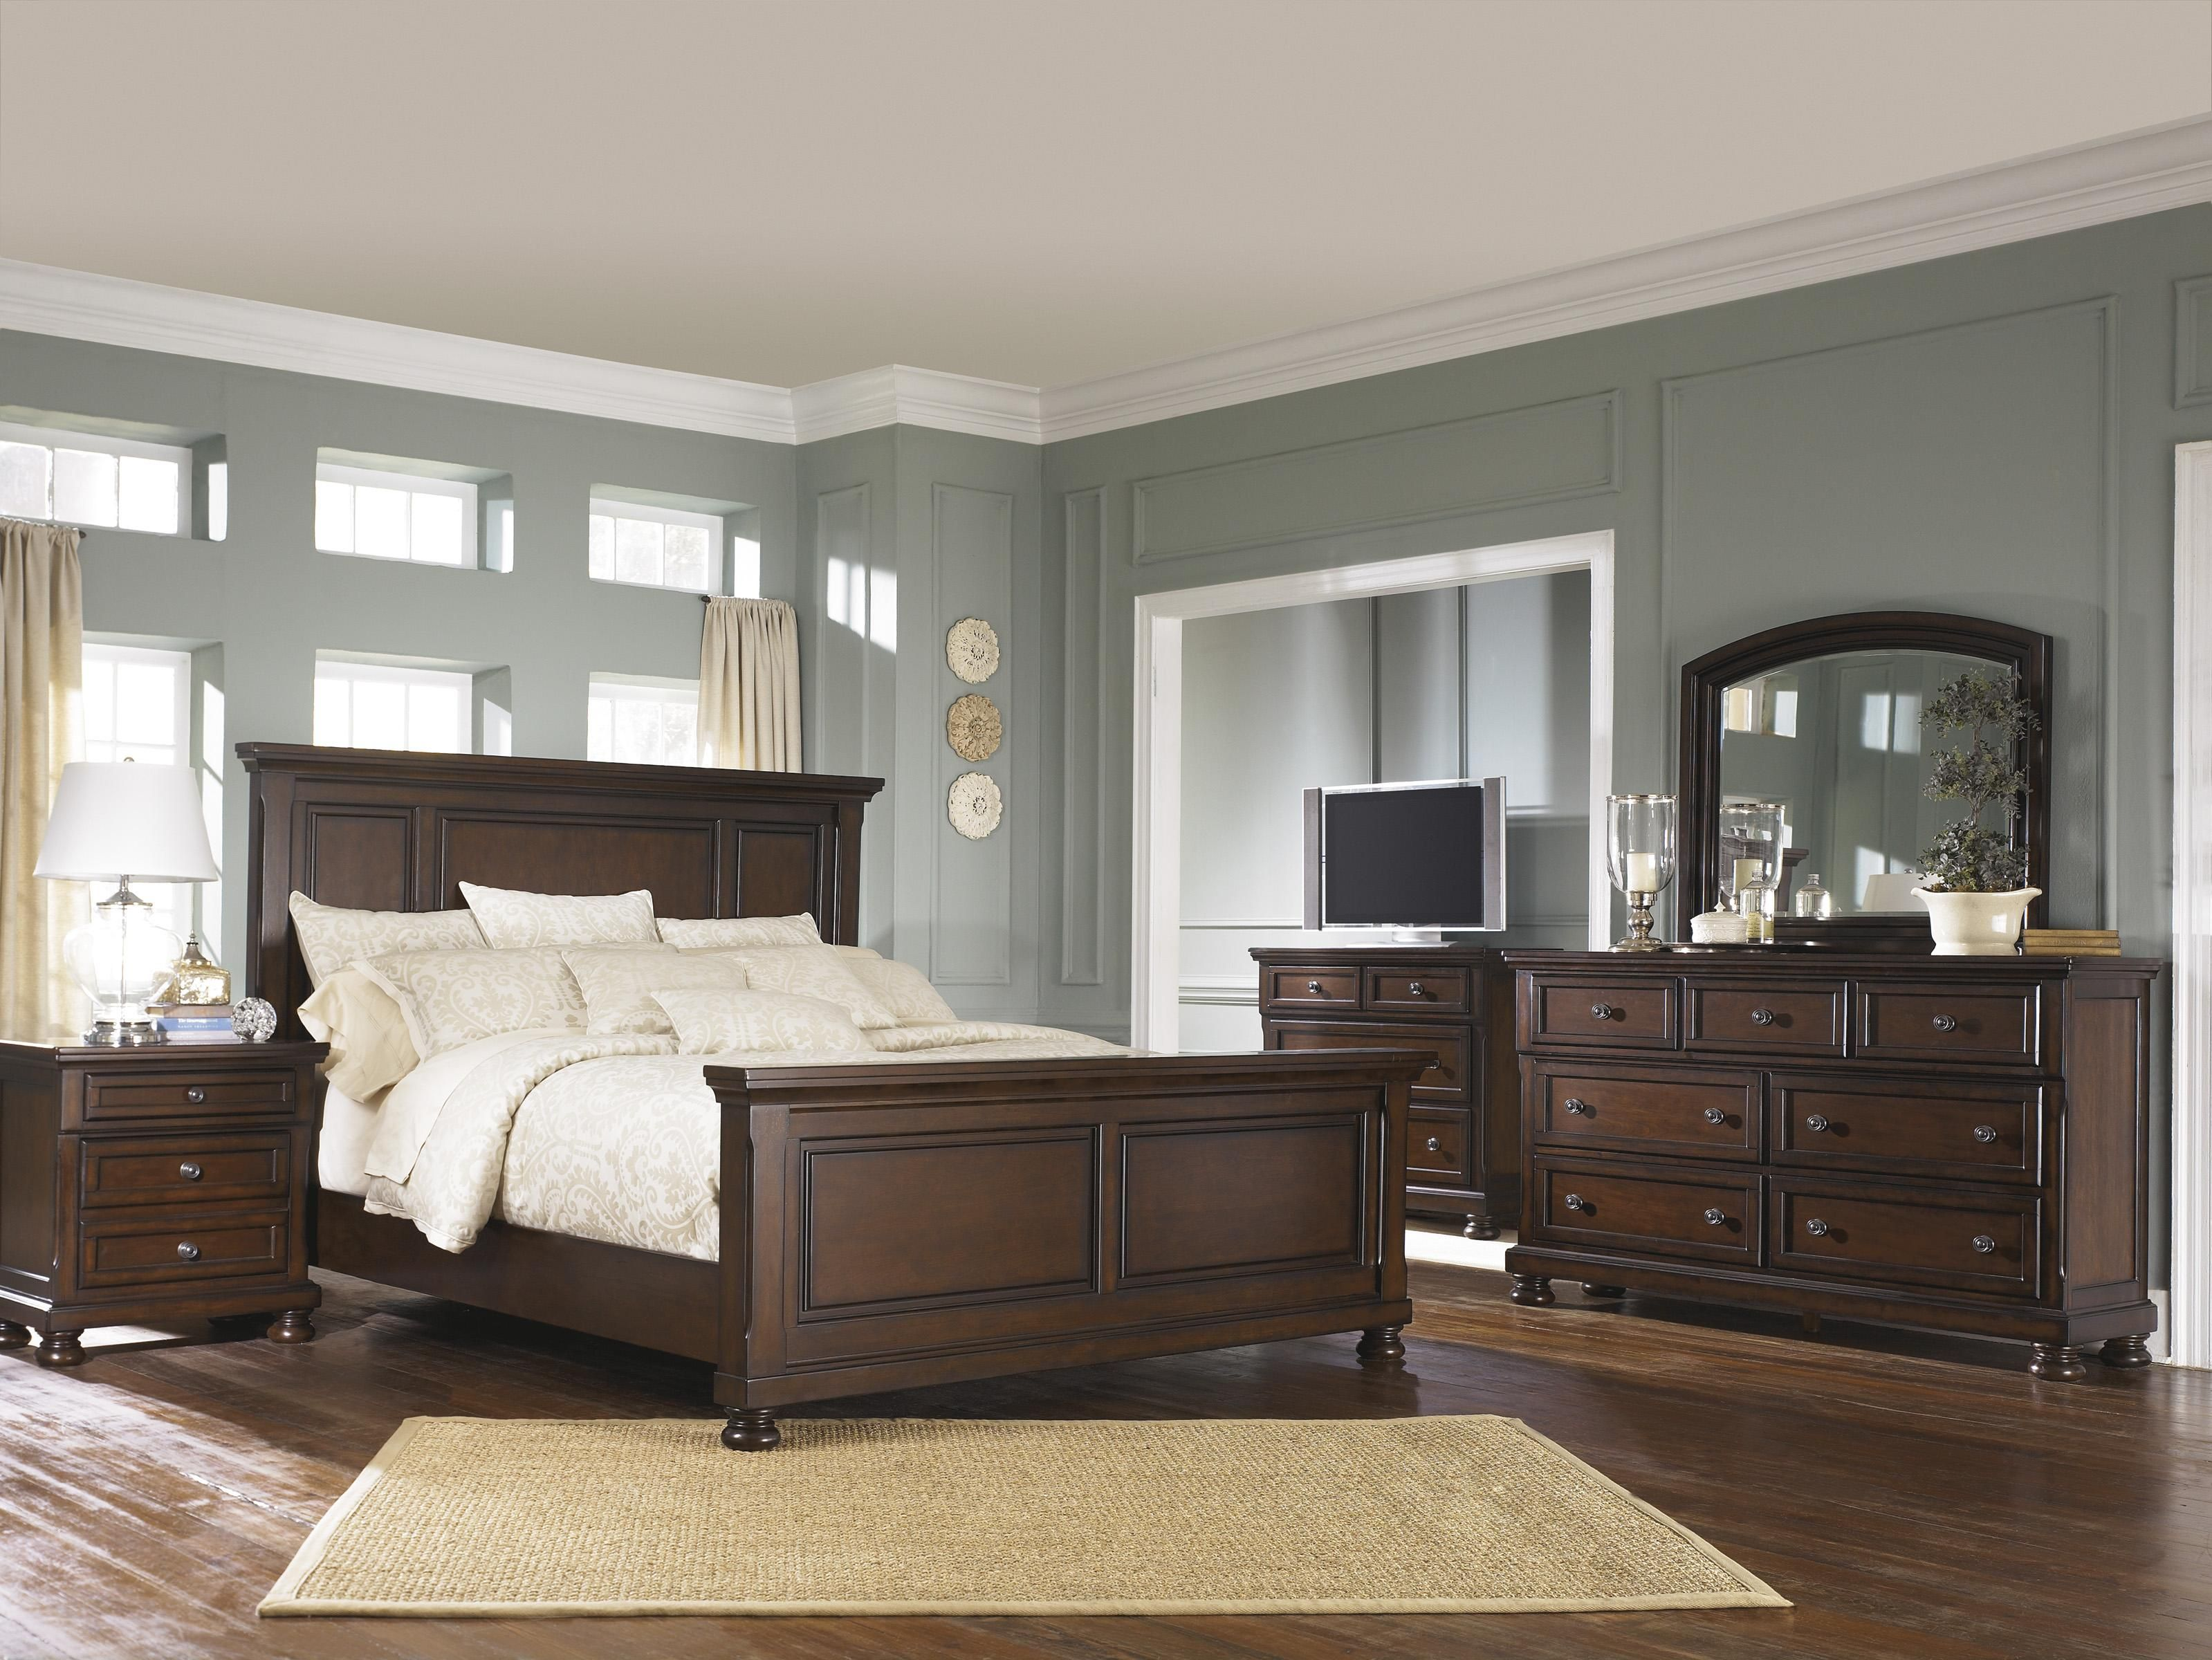 Porter queen bedroom group by ashley furniture dream home